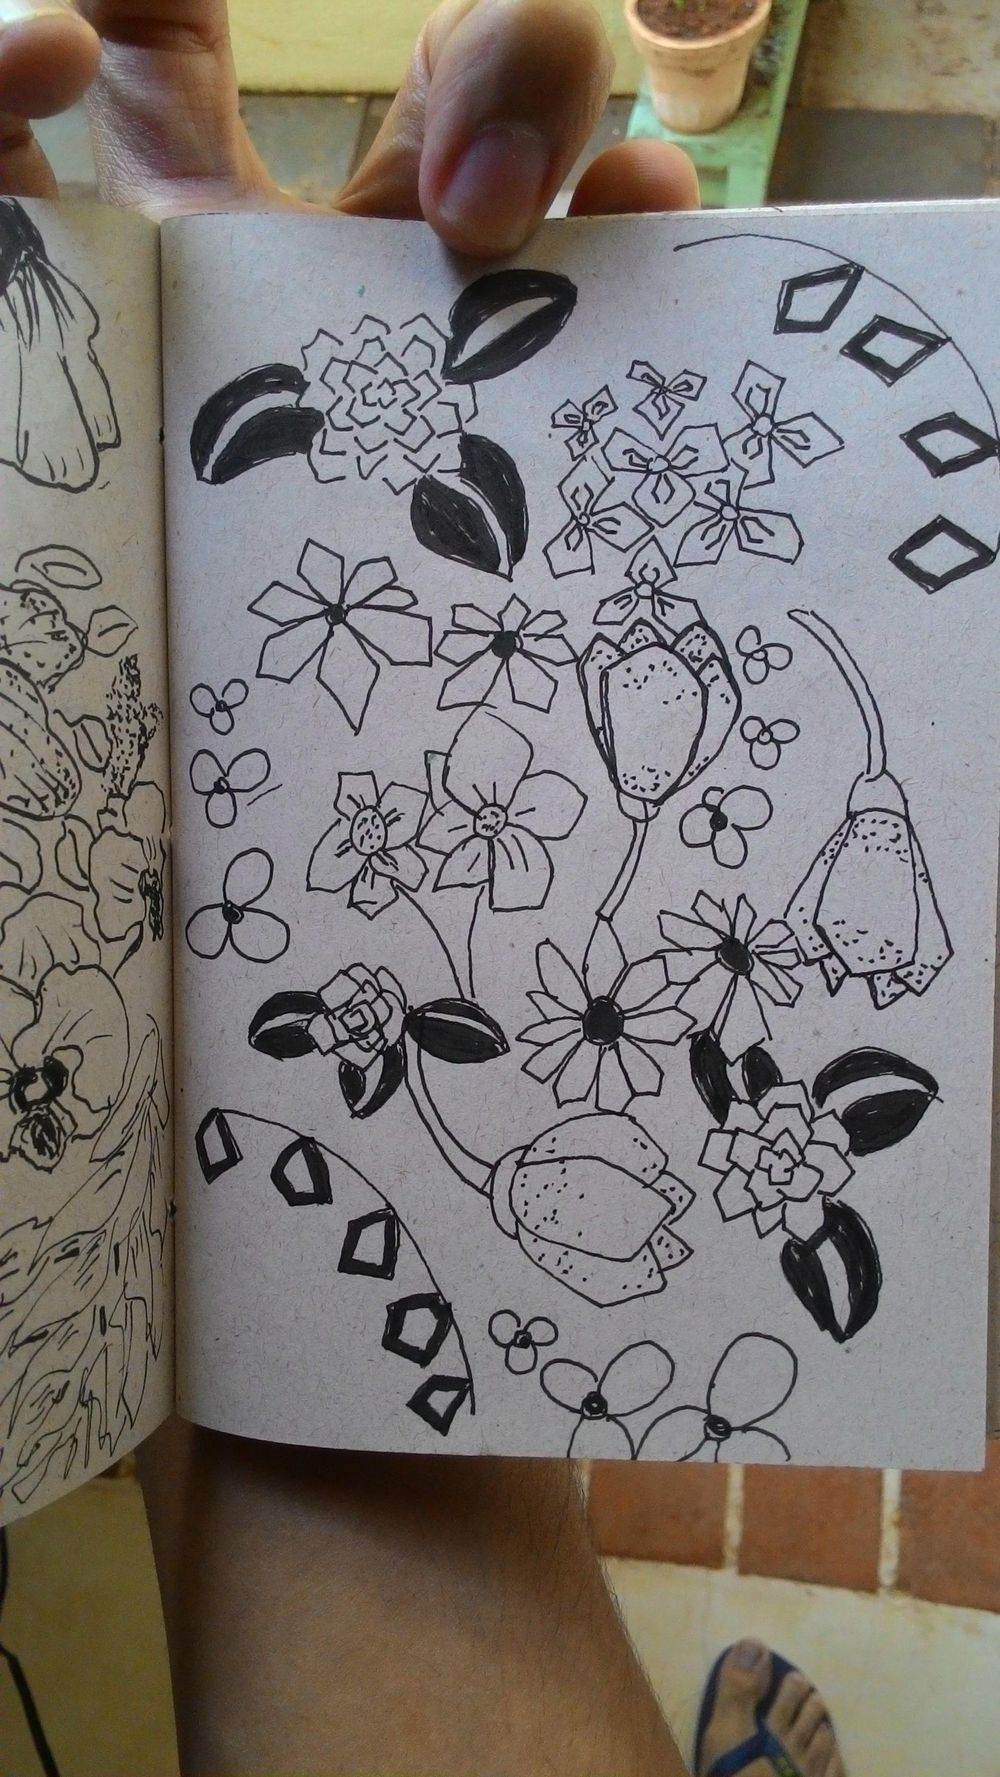 Some lovely flower doodles - image 2 - student project